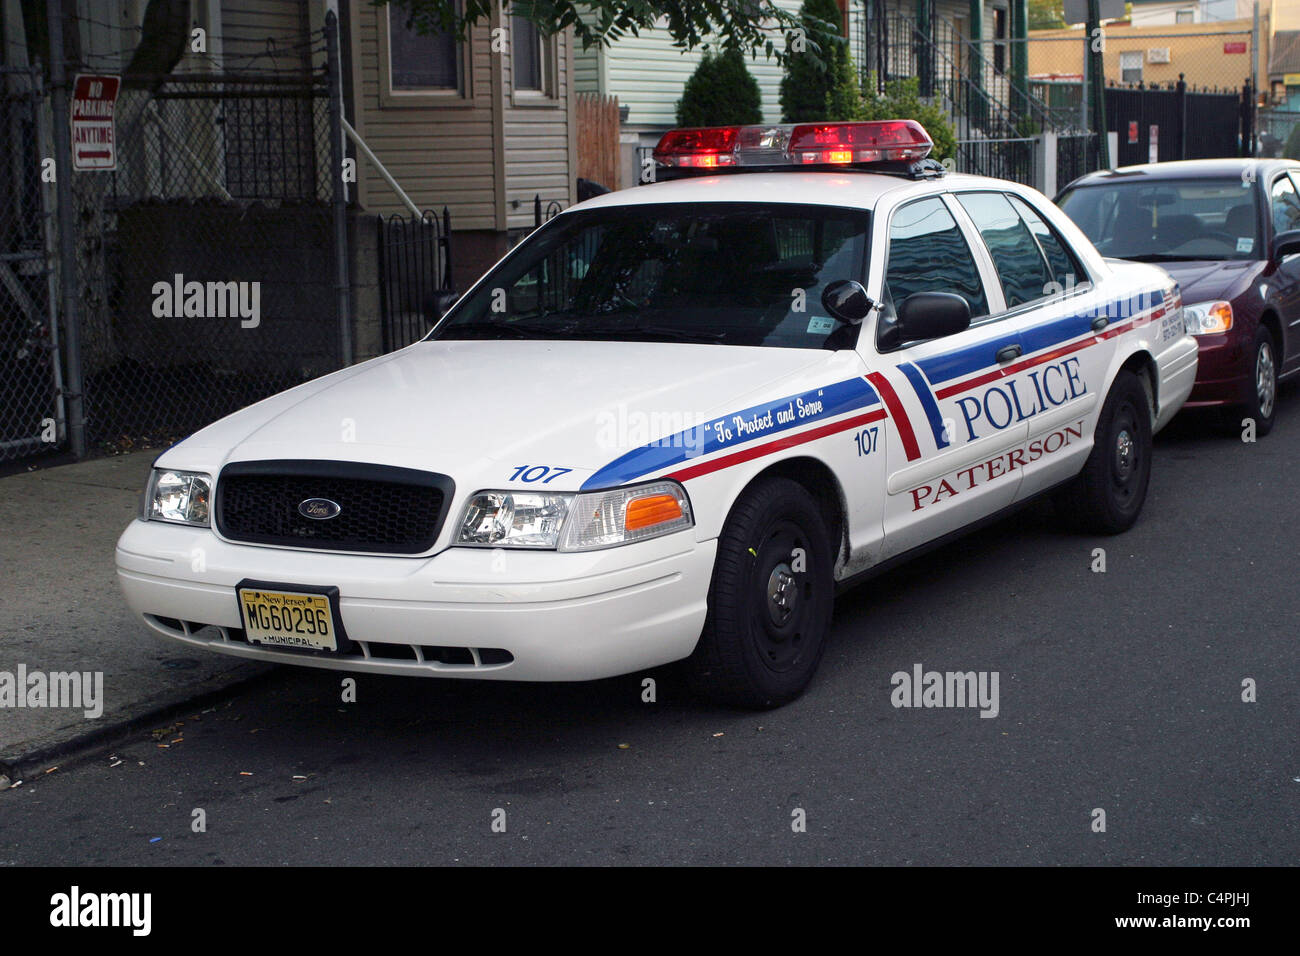 Ford crown victoria patrol car paterson police department new jersey stock image